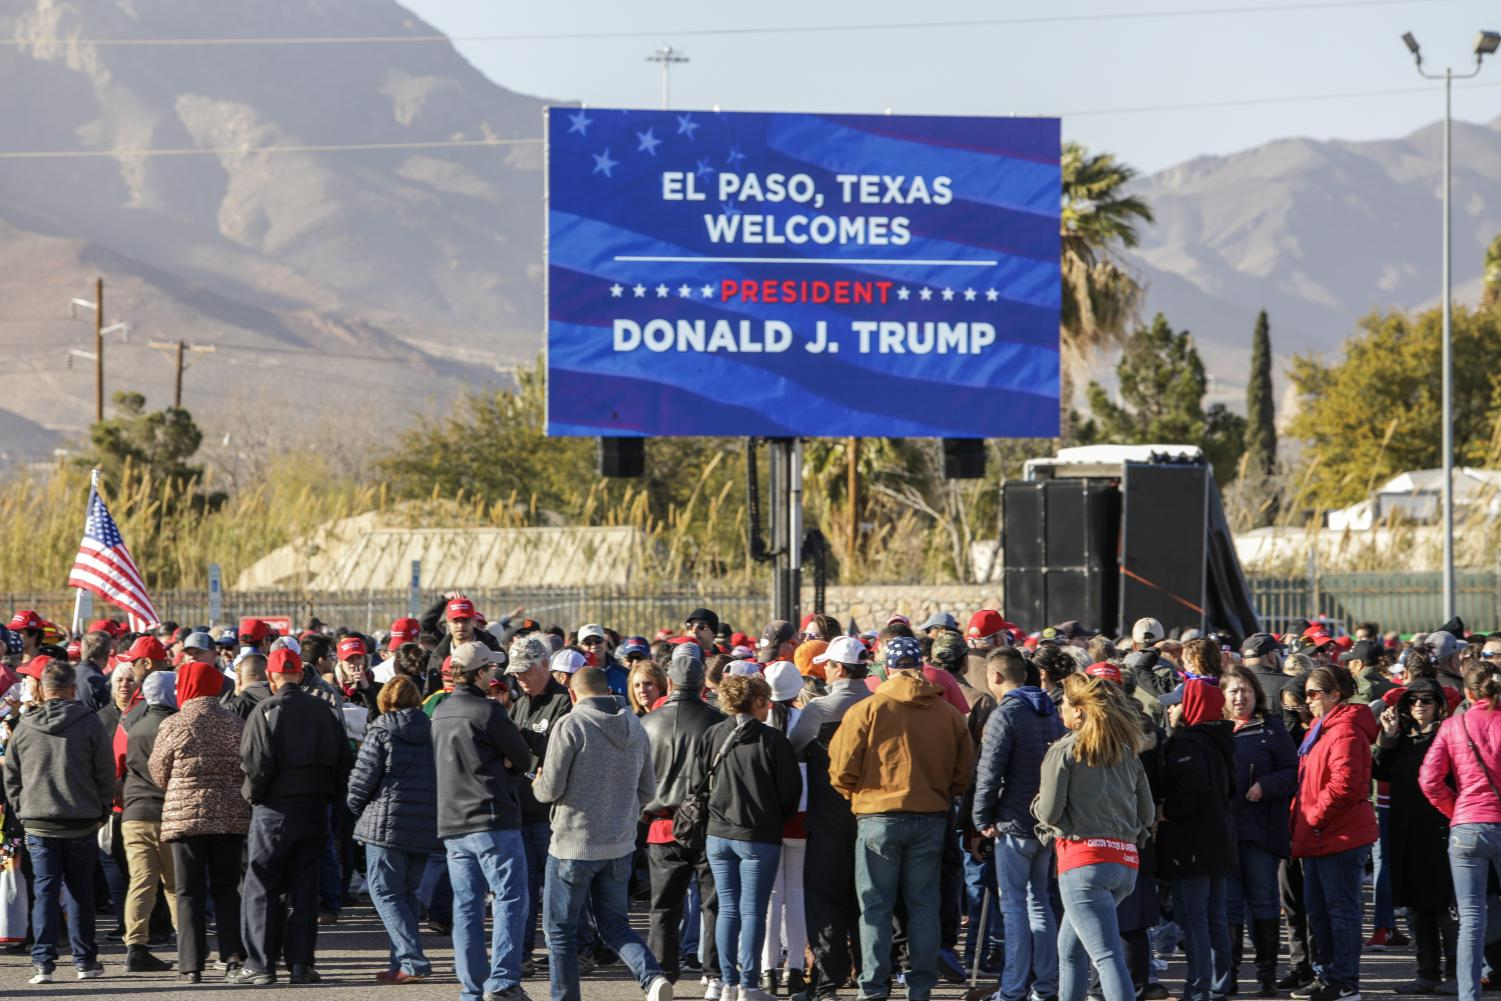 Donald Trump came to El Paso for a rally just days after the State of the Union where he claimed that El Paso was